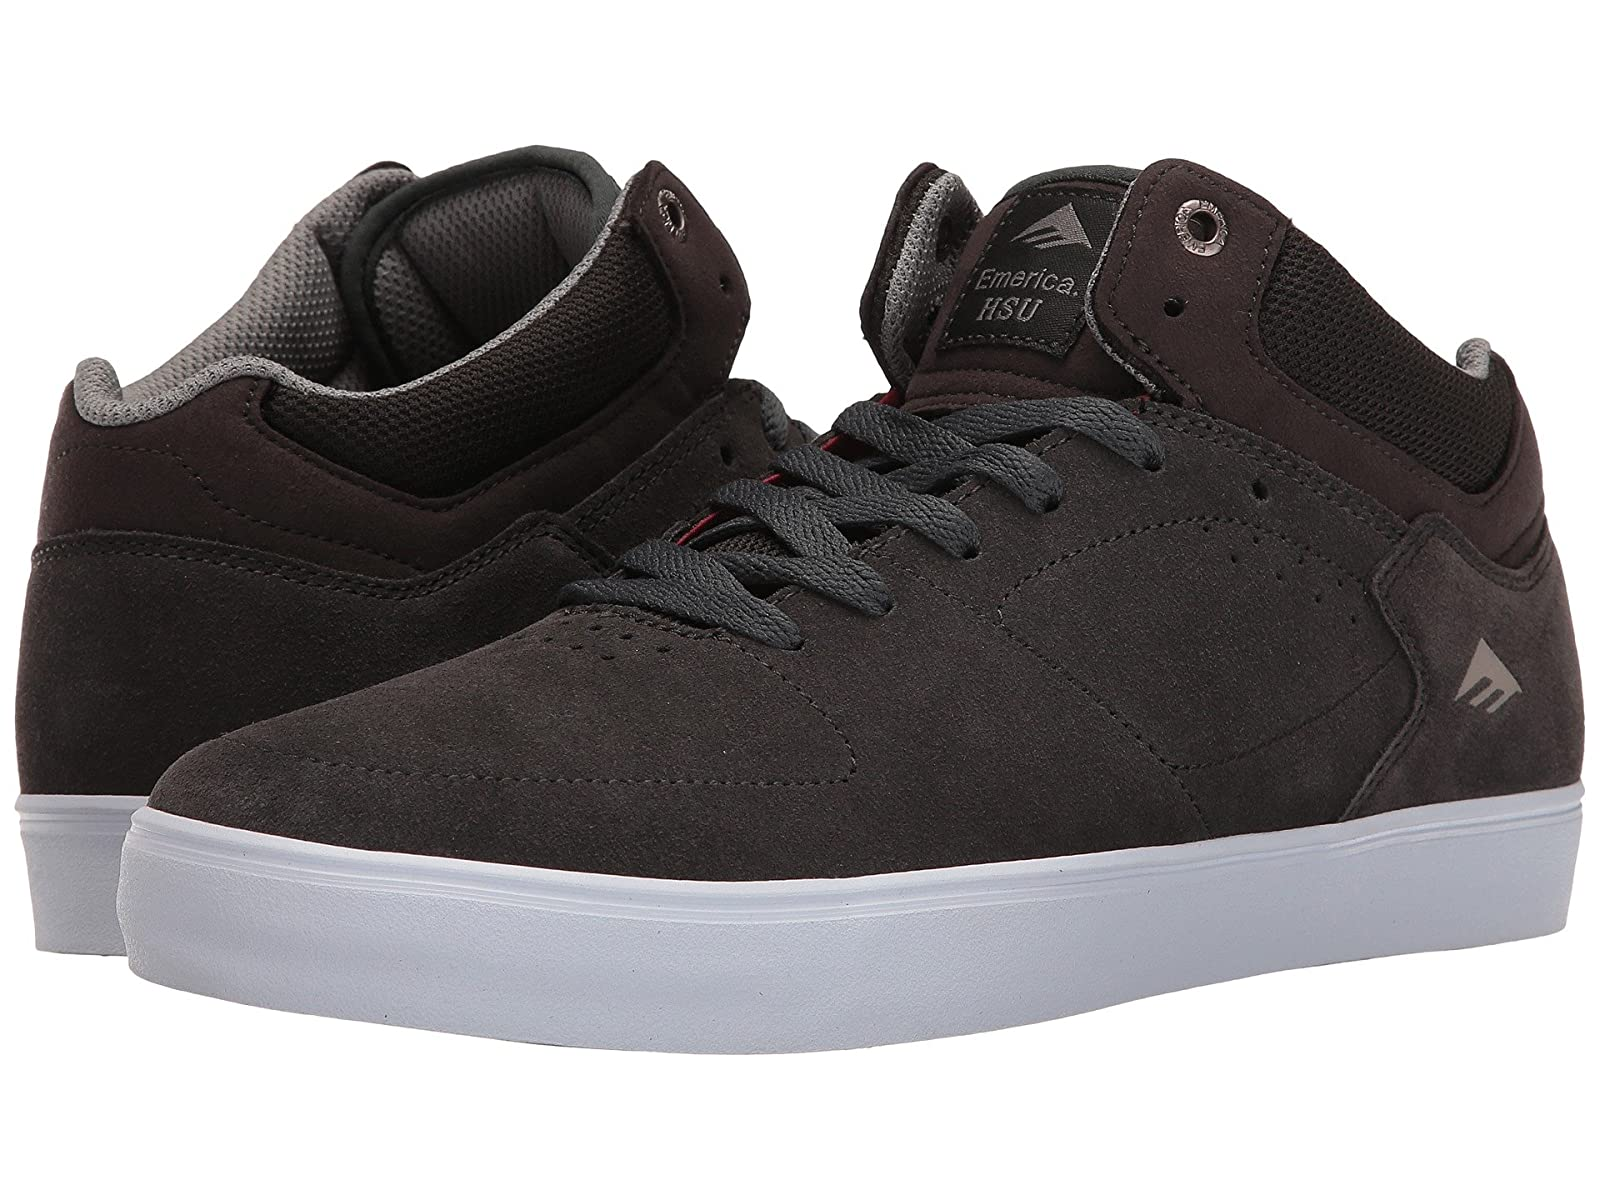 Emerica The HSU G6Cheap and distinctive eye-catching shoes